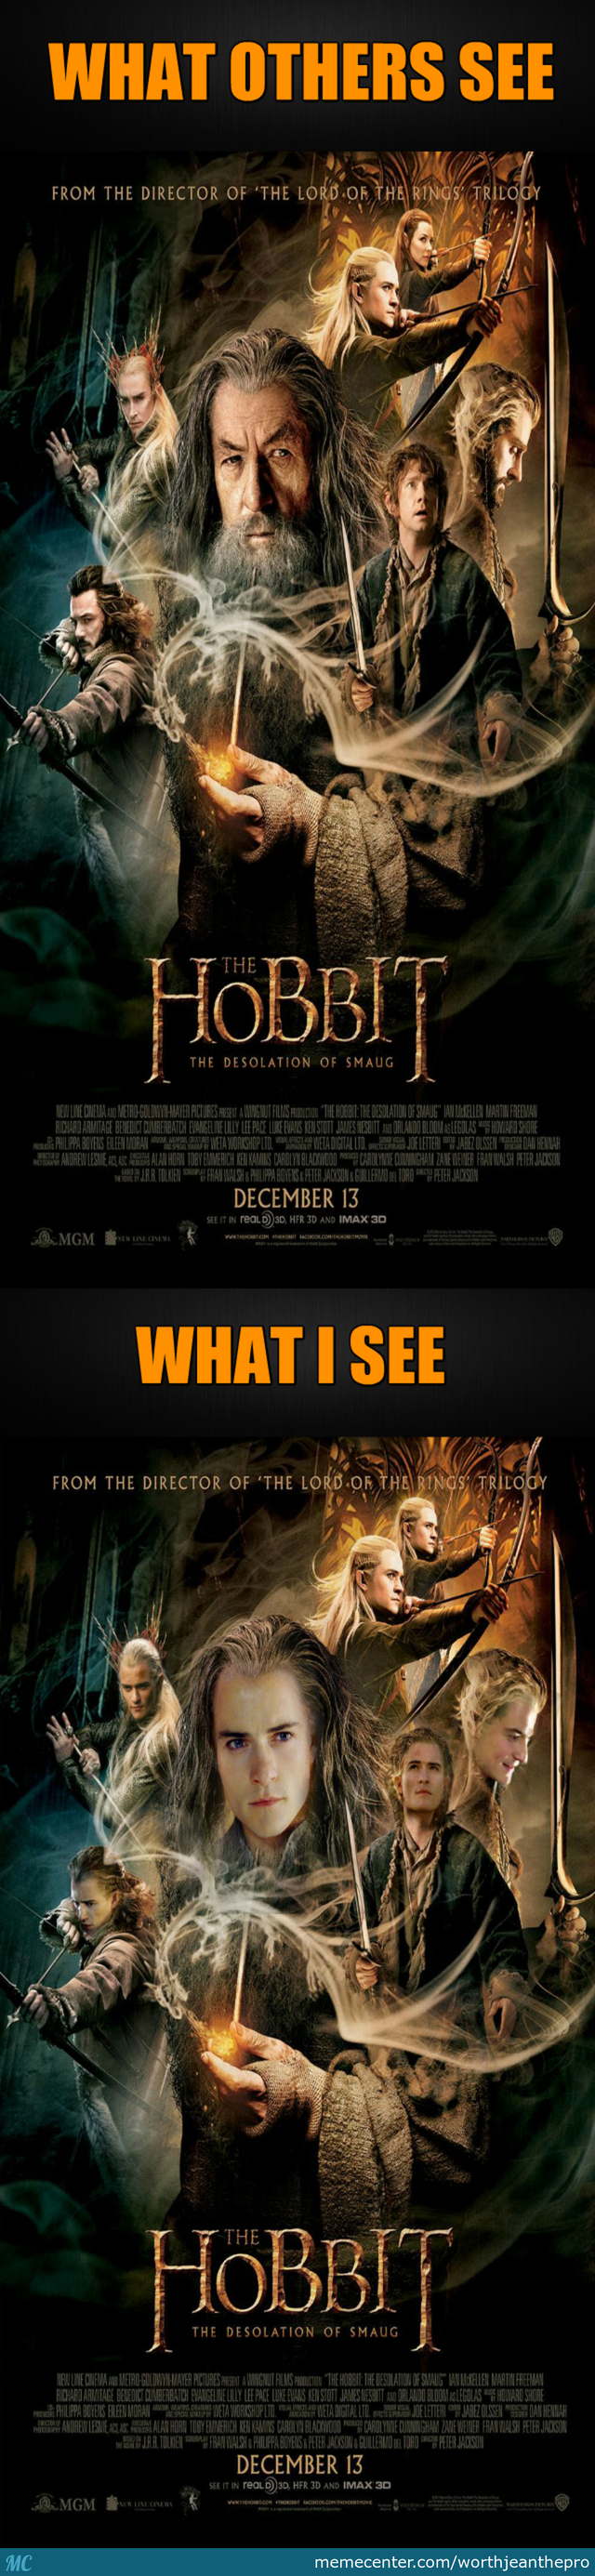 the hobbit: desolation of smaug in a nutshell.recyclebin